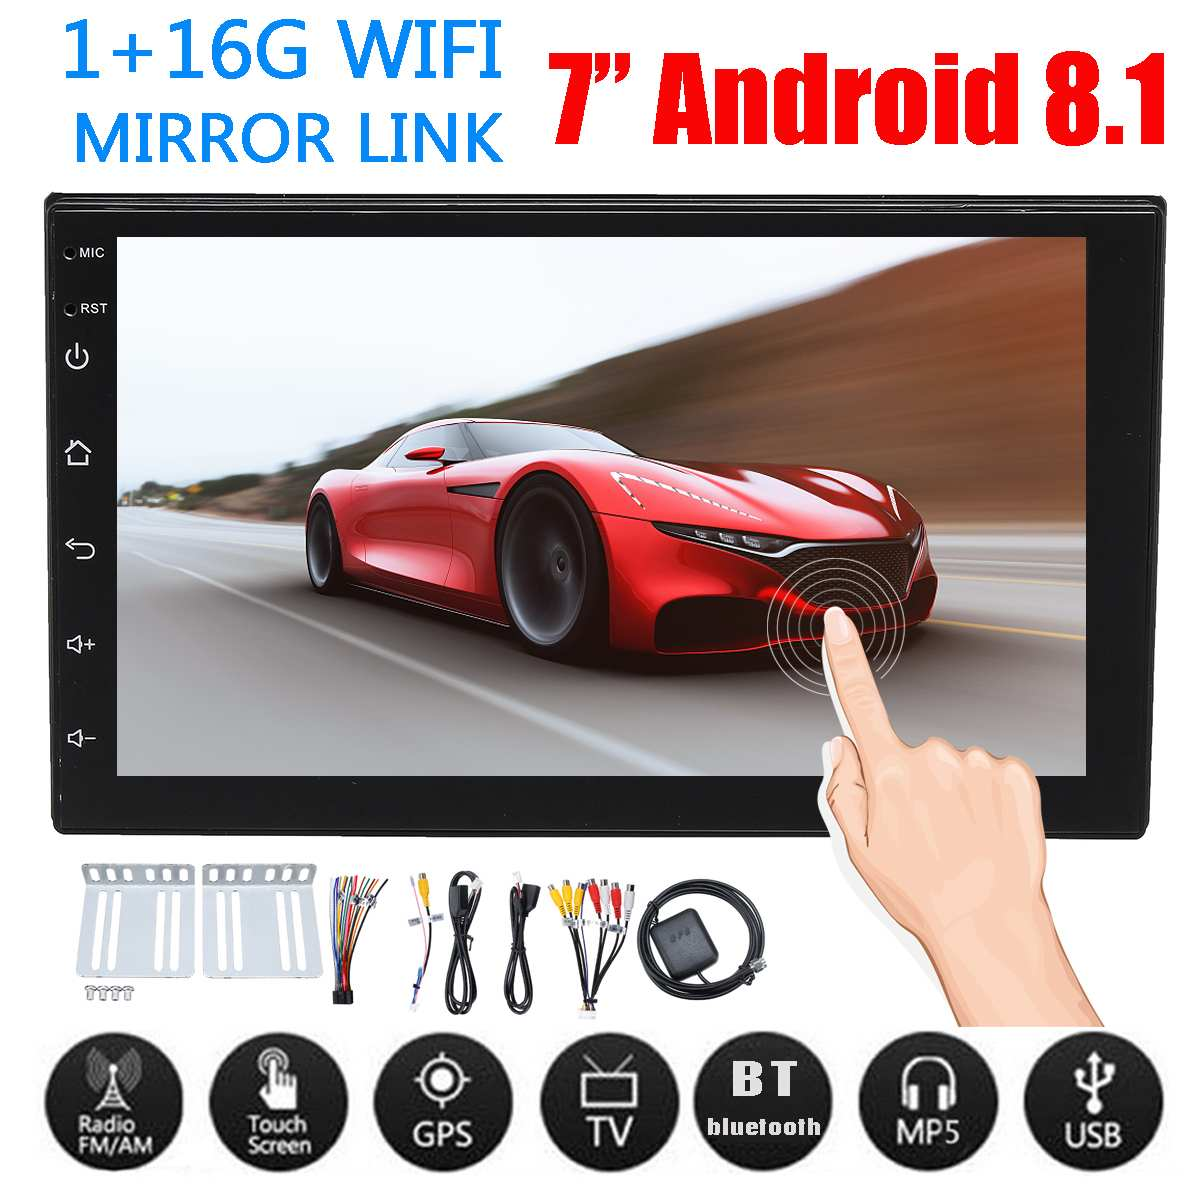 Android 8.1 Universal Car Stereo 7 inch 2DIN Quad Core WIFI bluetooth GPS FM Radio Video MP5 Player Car Multimedia PlayerAndroid 8.1 Universal Car Stereo 7 inch 2DIN Quad Core WIFI bluetooth GPS FM Radio Video MP5 Player Car Multimedia Player